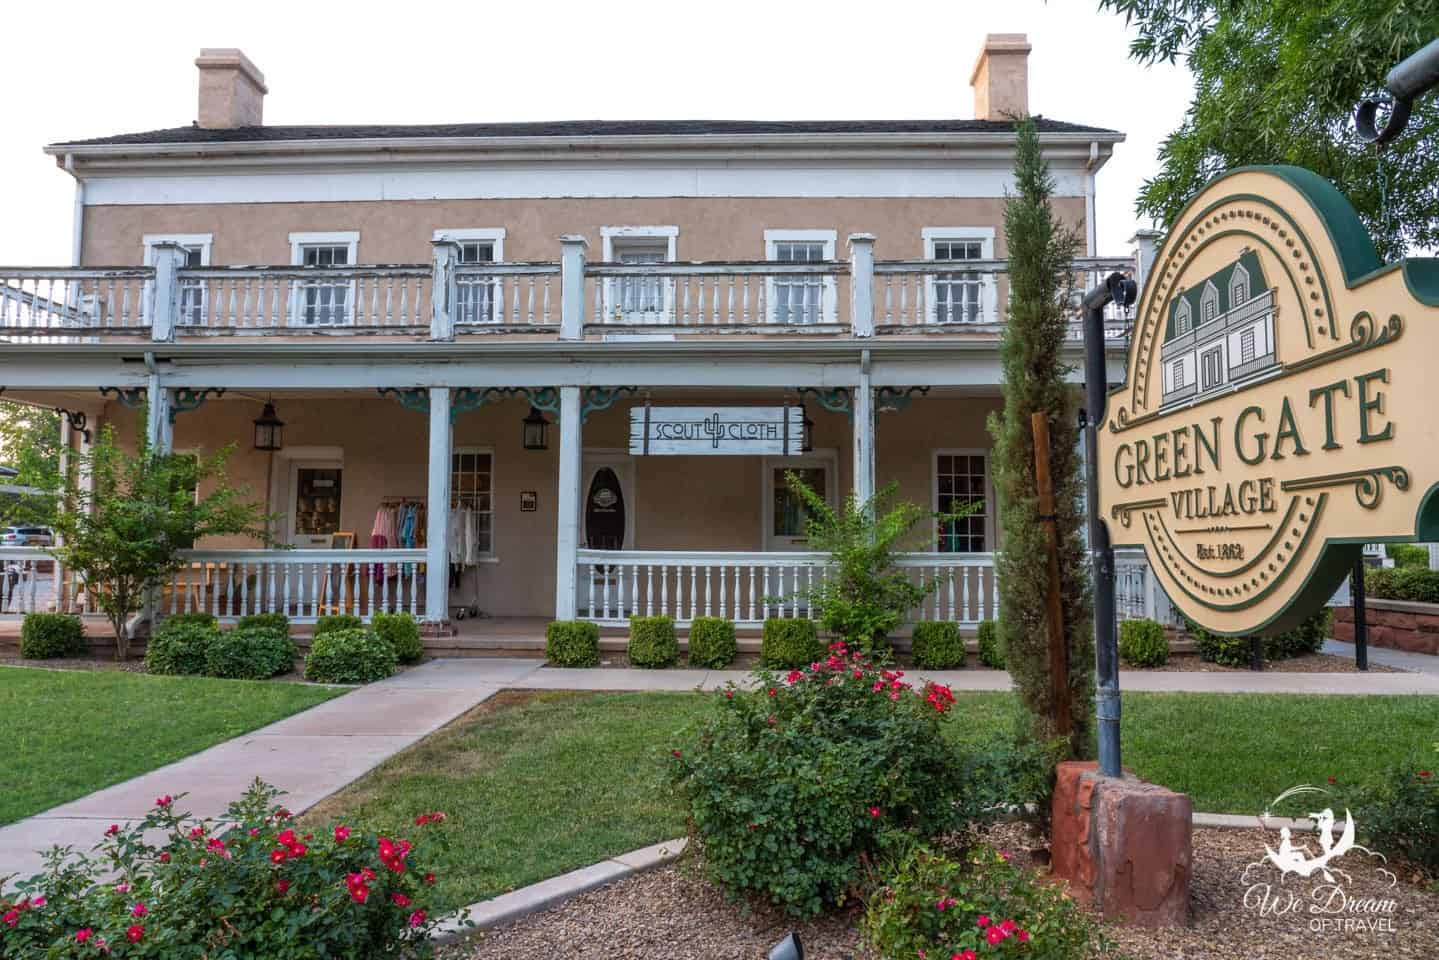 Green Gate Village in St George is a beautiful historic area to explore.